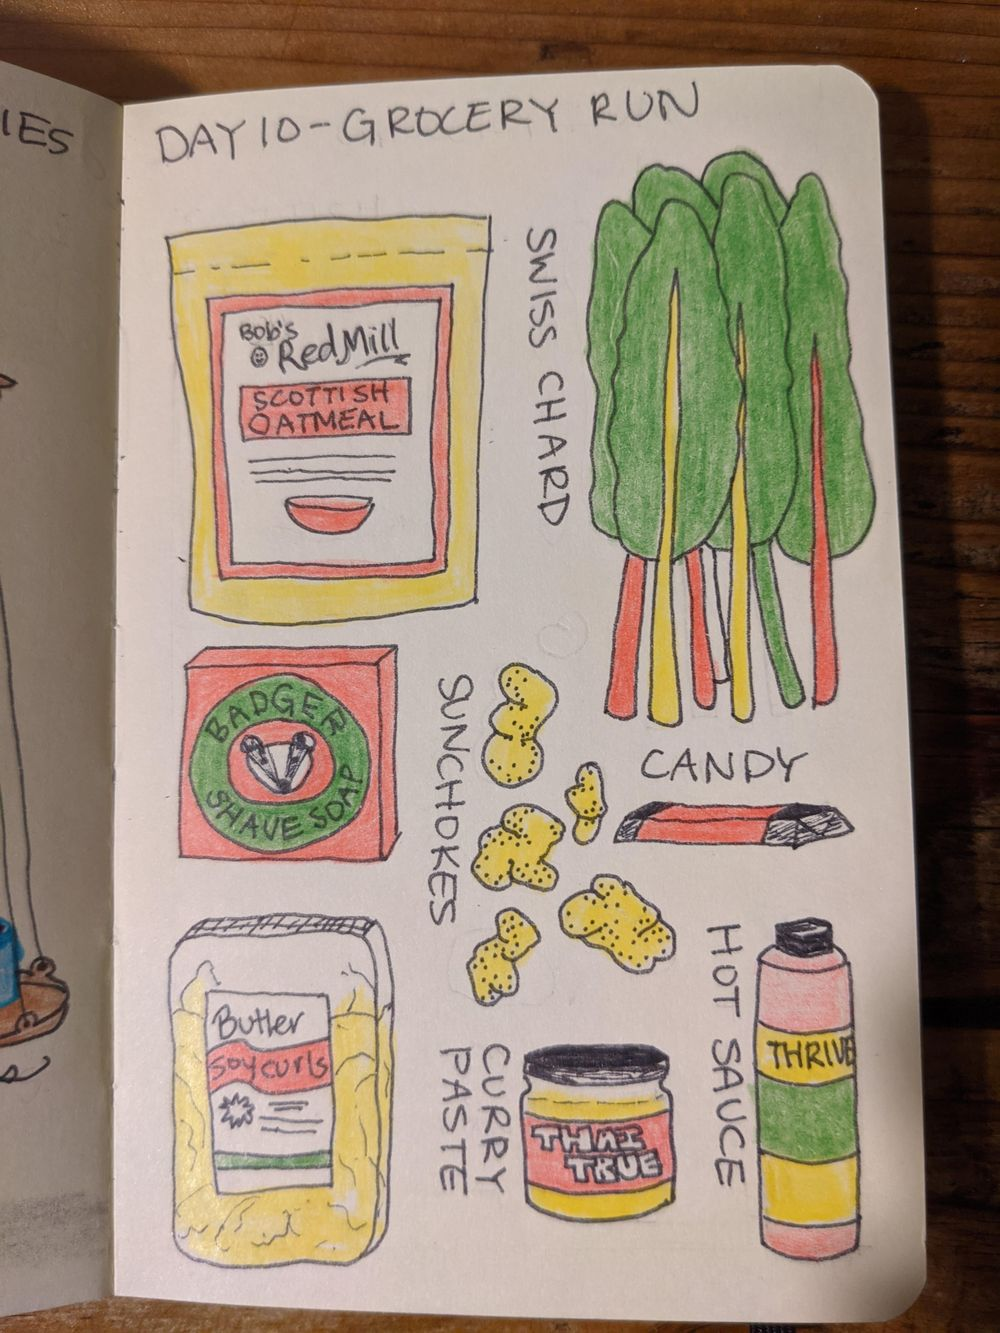 tessa (illustrated journaling 14-day) - image 10 - student project